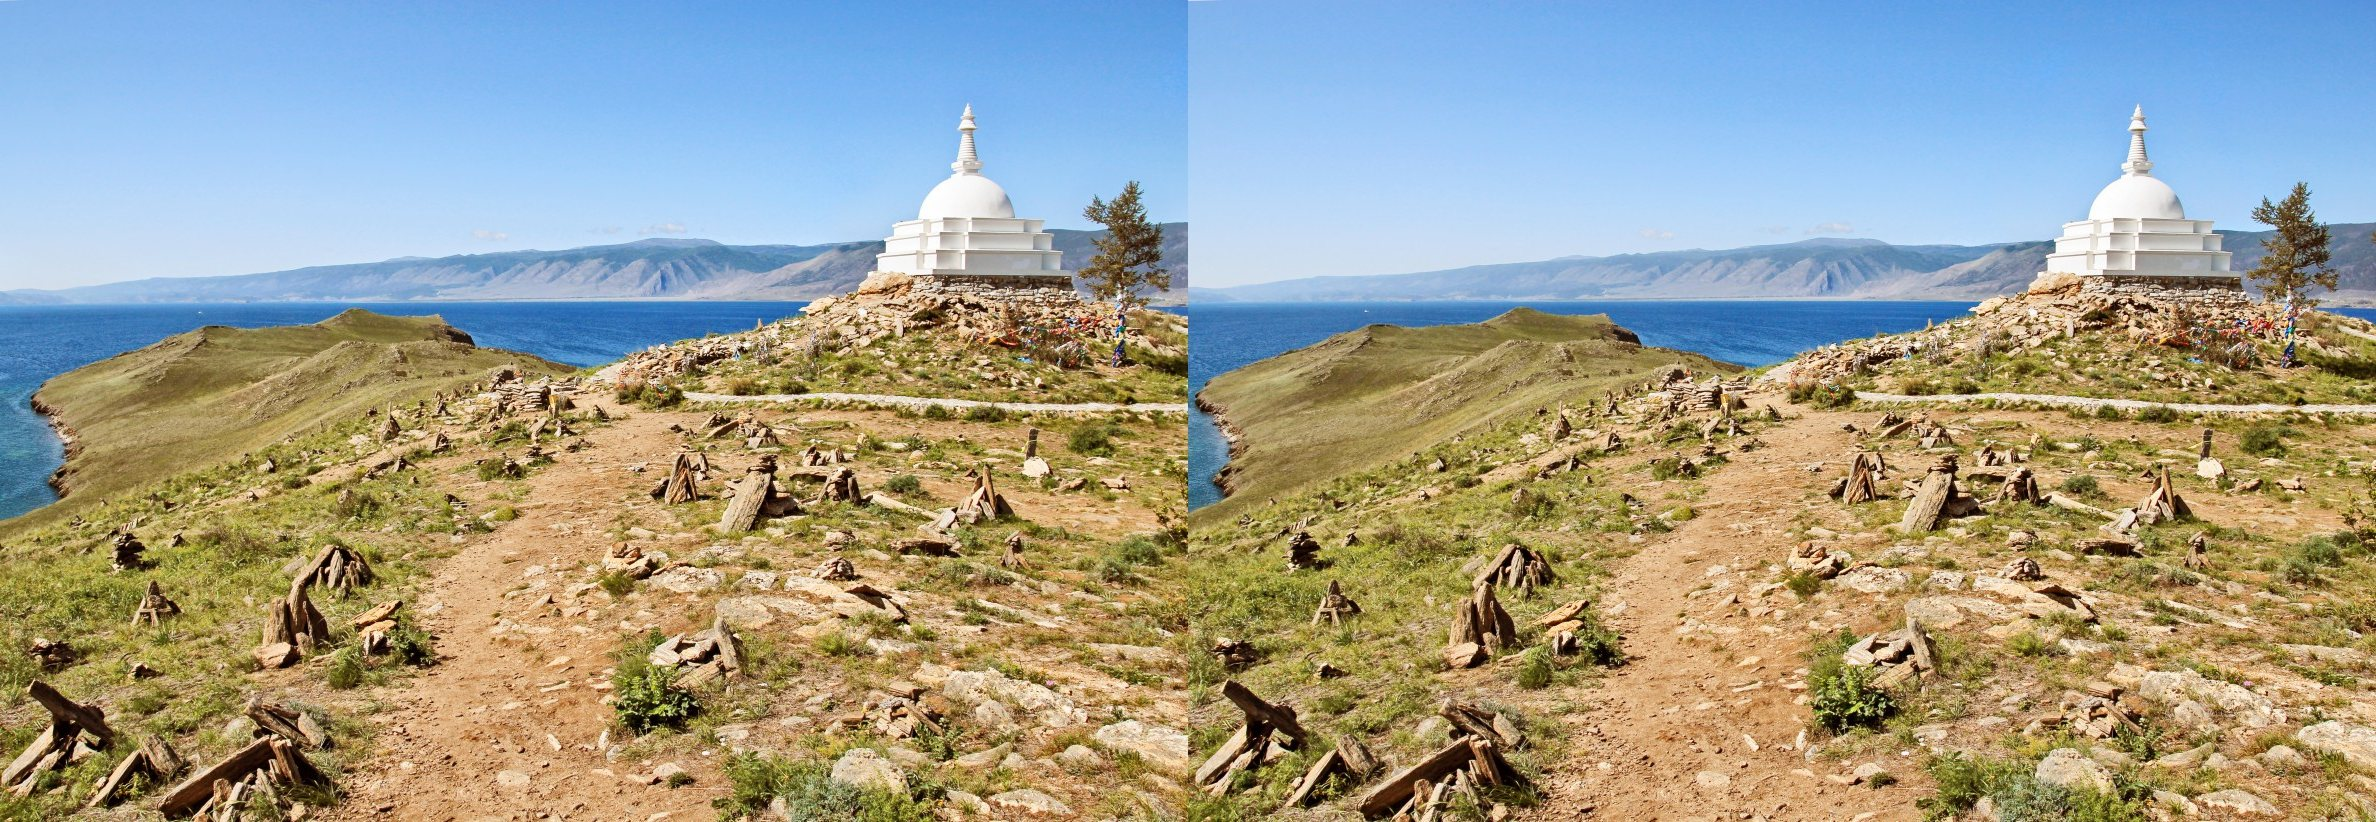 Buddhist stupa on the Ogoy Island